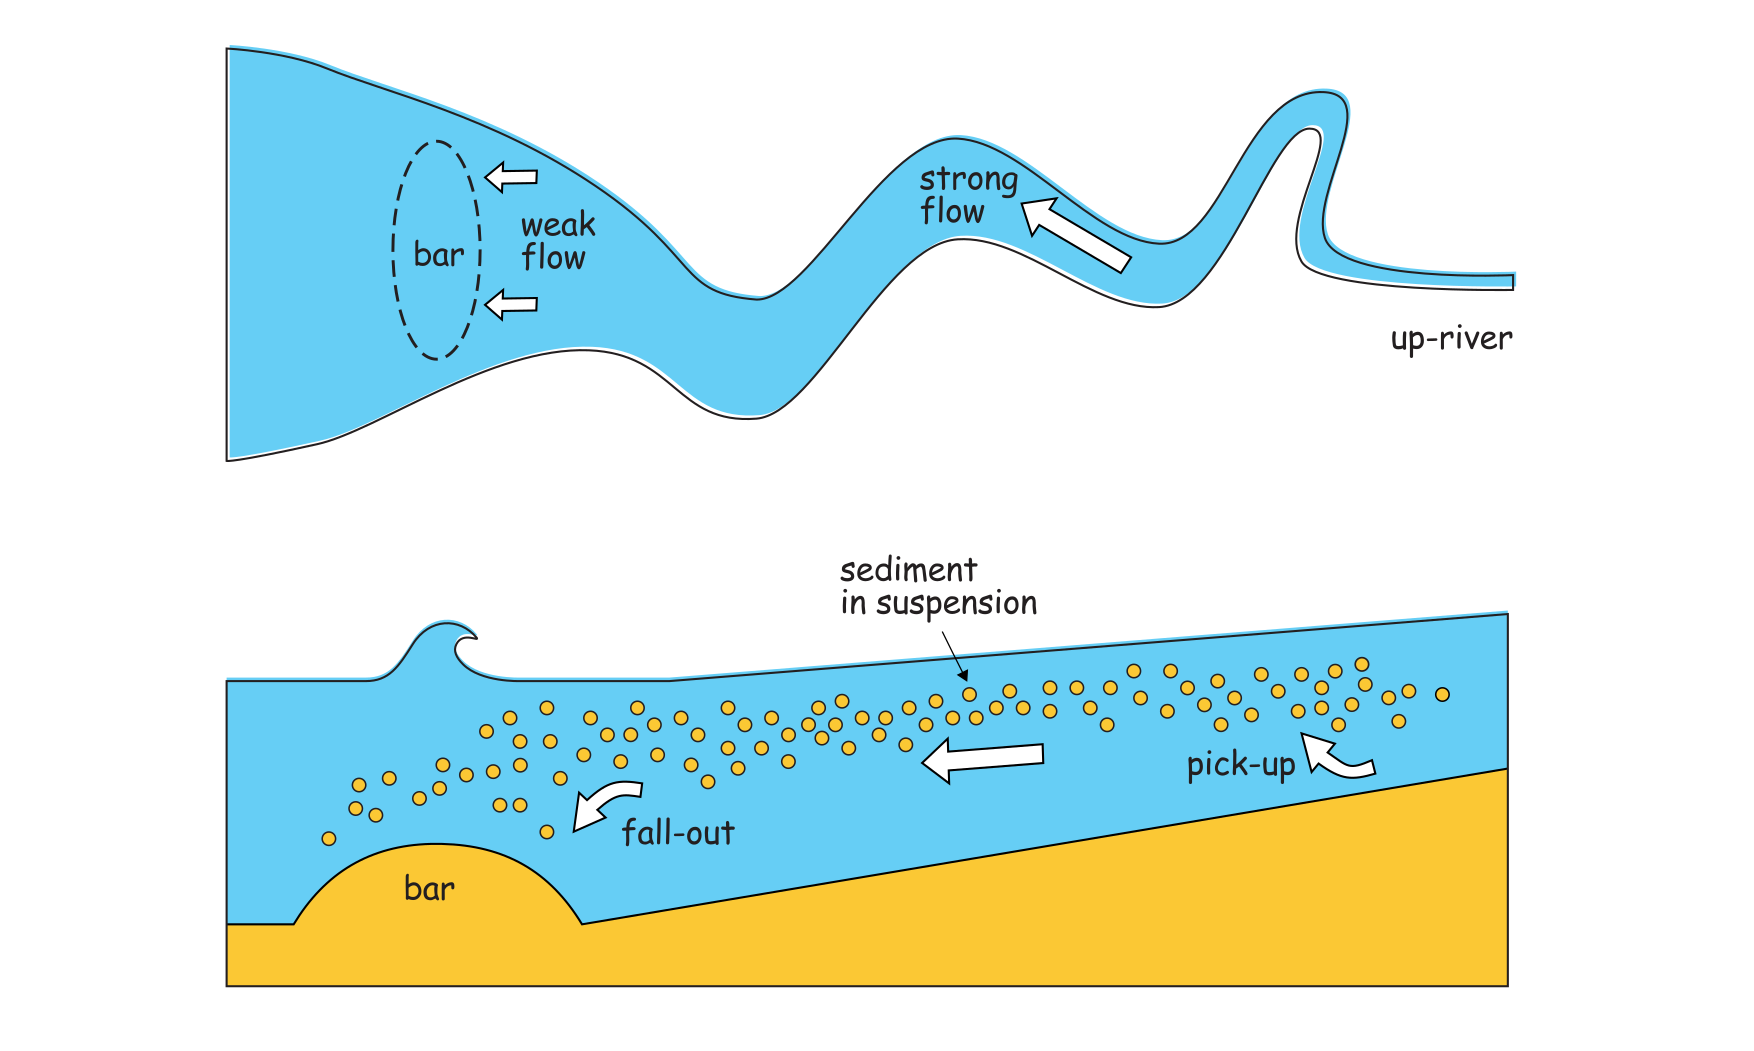 Top view and side view: the sediment stays in suspension in the fast-flowing river, but falls out of the water column as soon as the flow decreases at the mouth of the estuary.